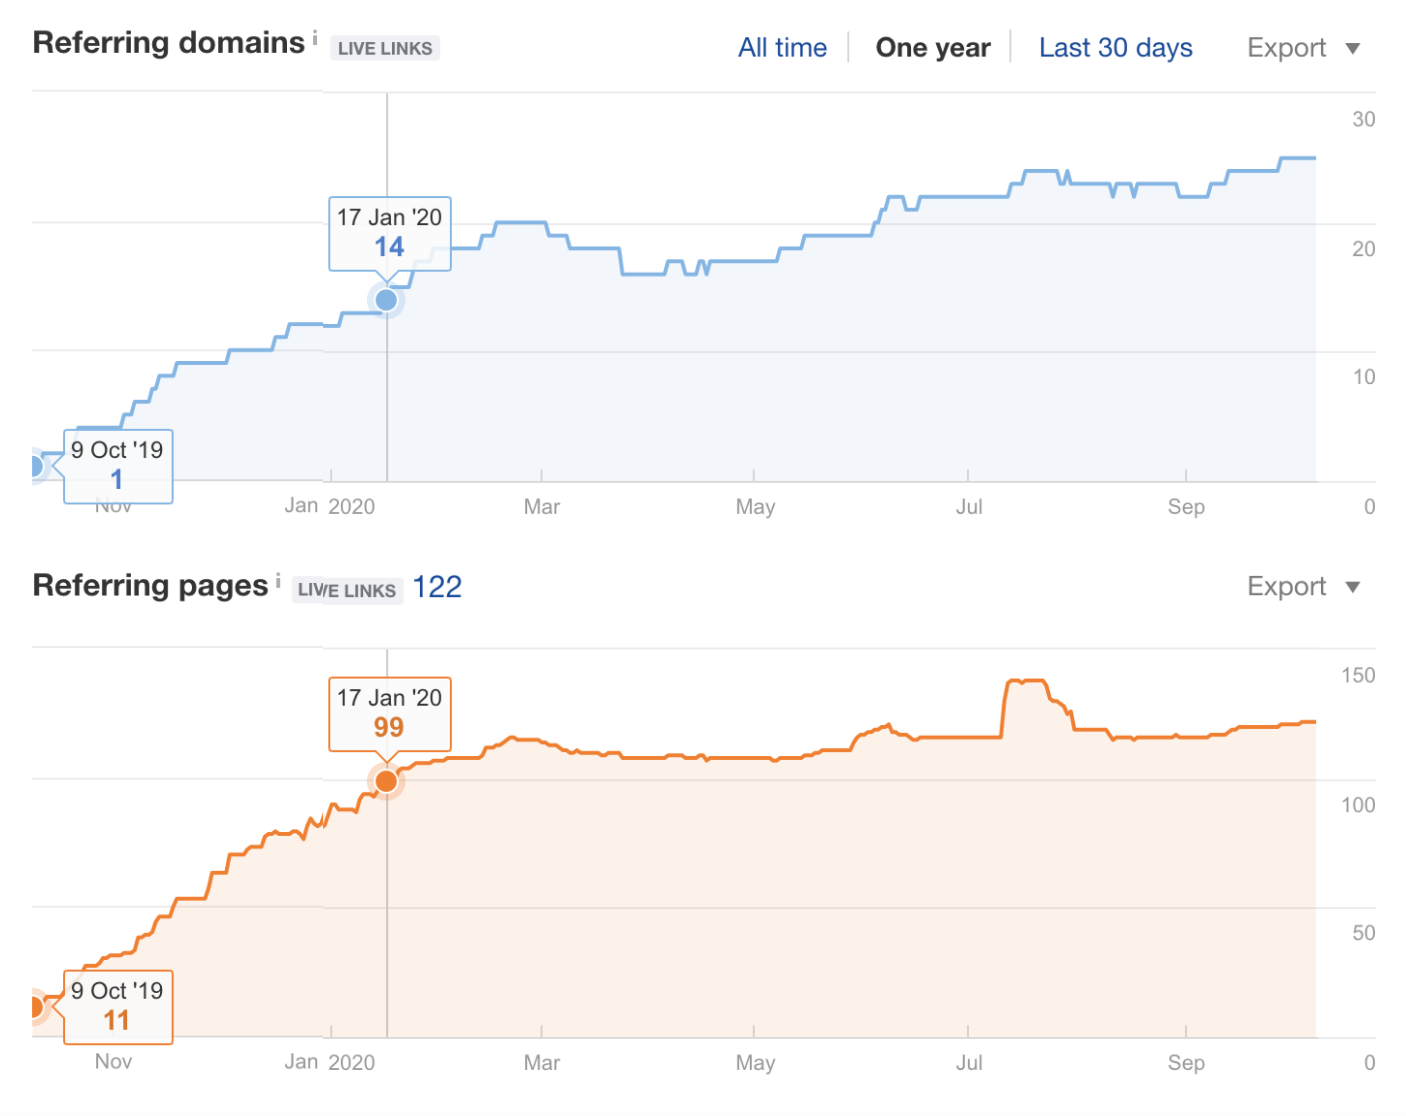 Referring domains and pages from Oct 9, 2019, to Jan 17, 2020.